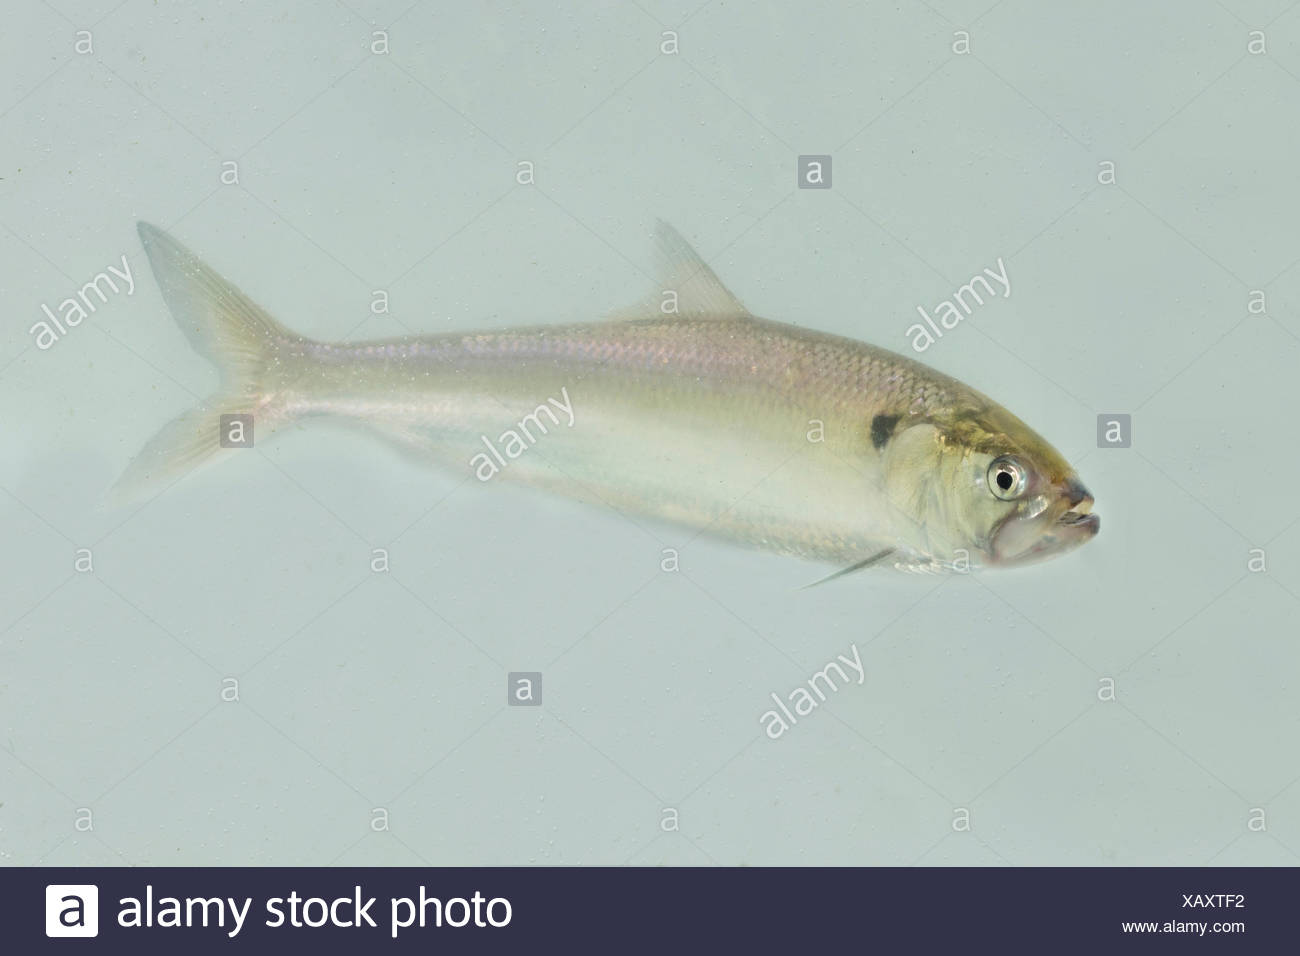 swimming adult twait shad - Stock Image